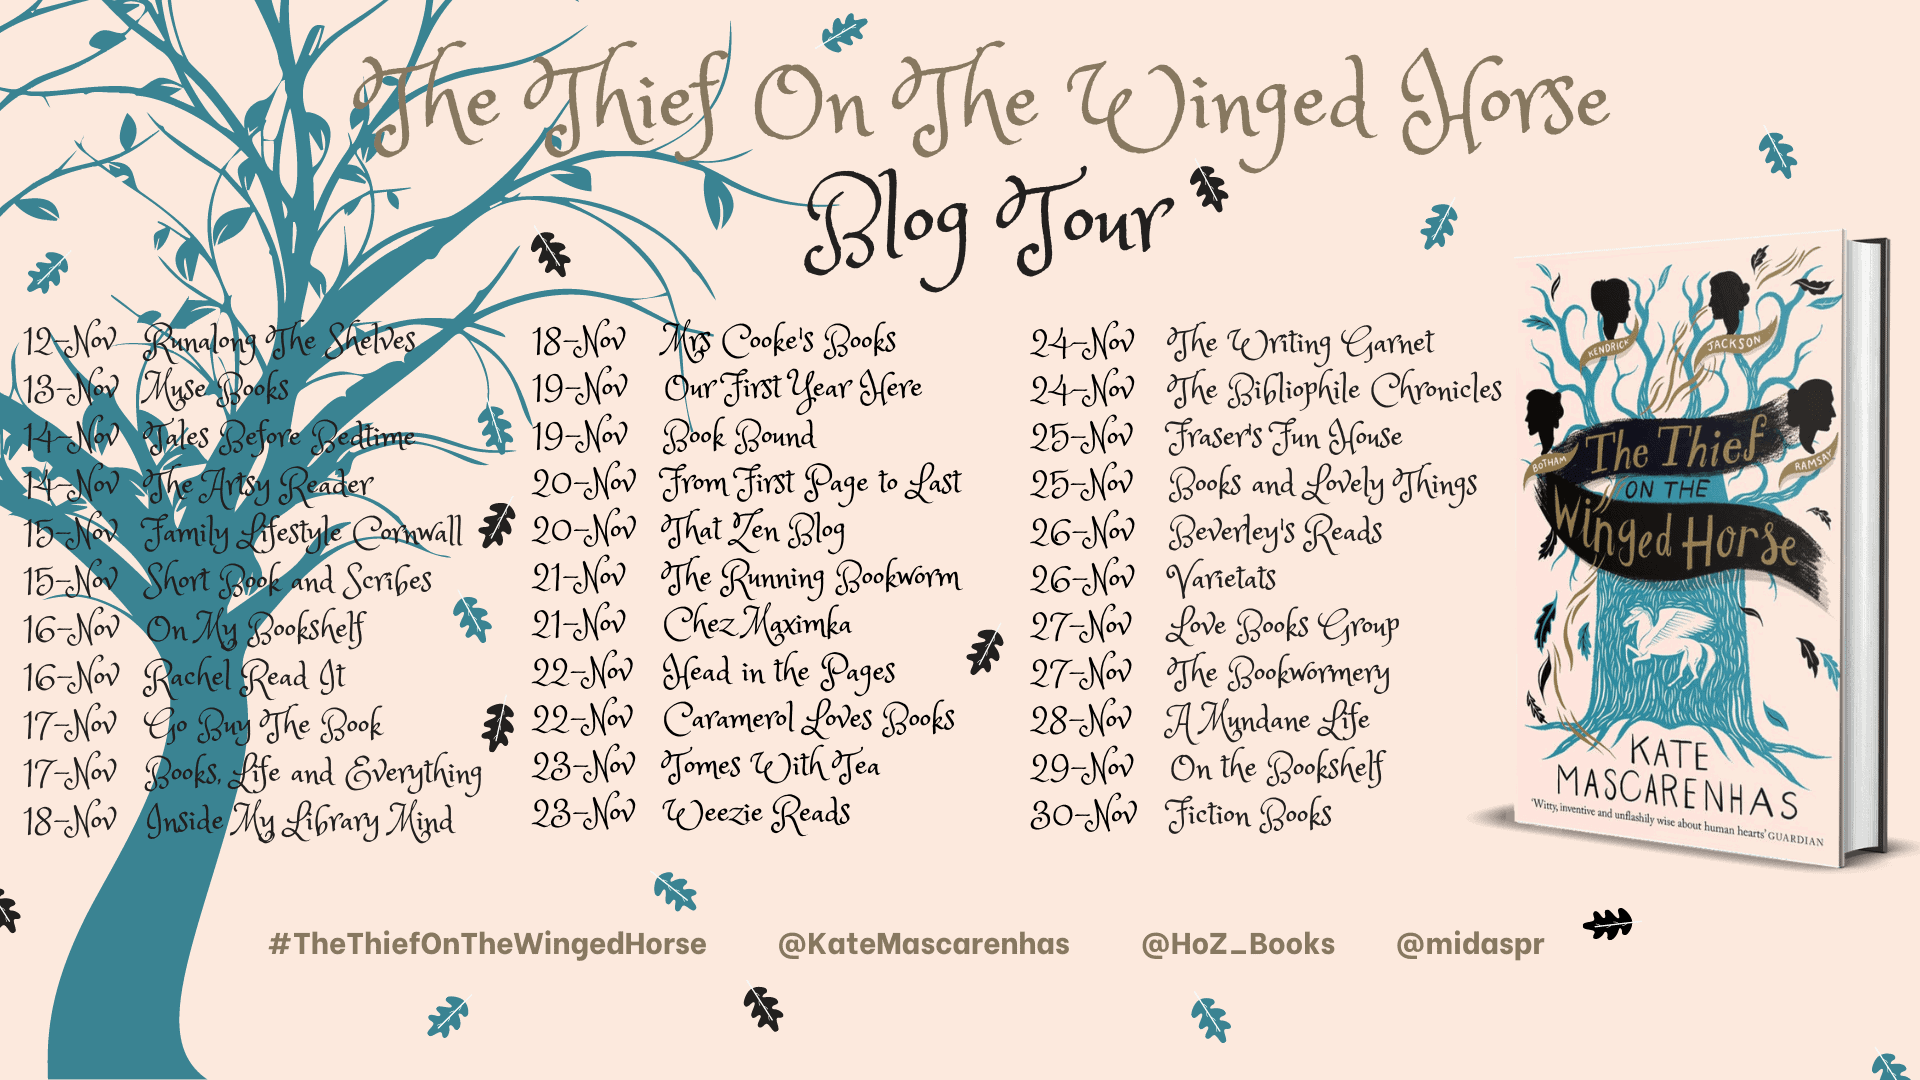 The Thief On The Winged Horse by Kate Mascarenhas - blog tour